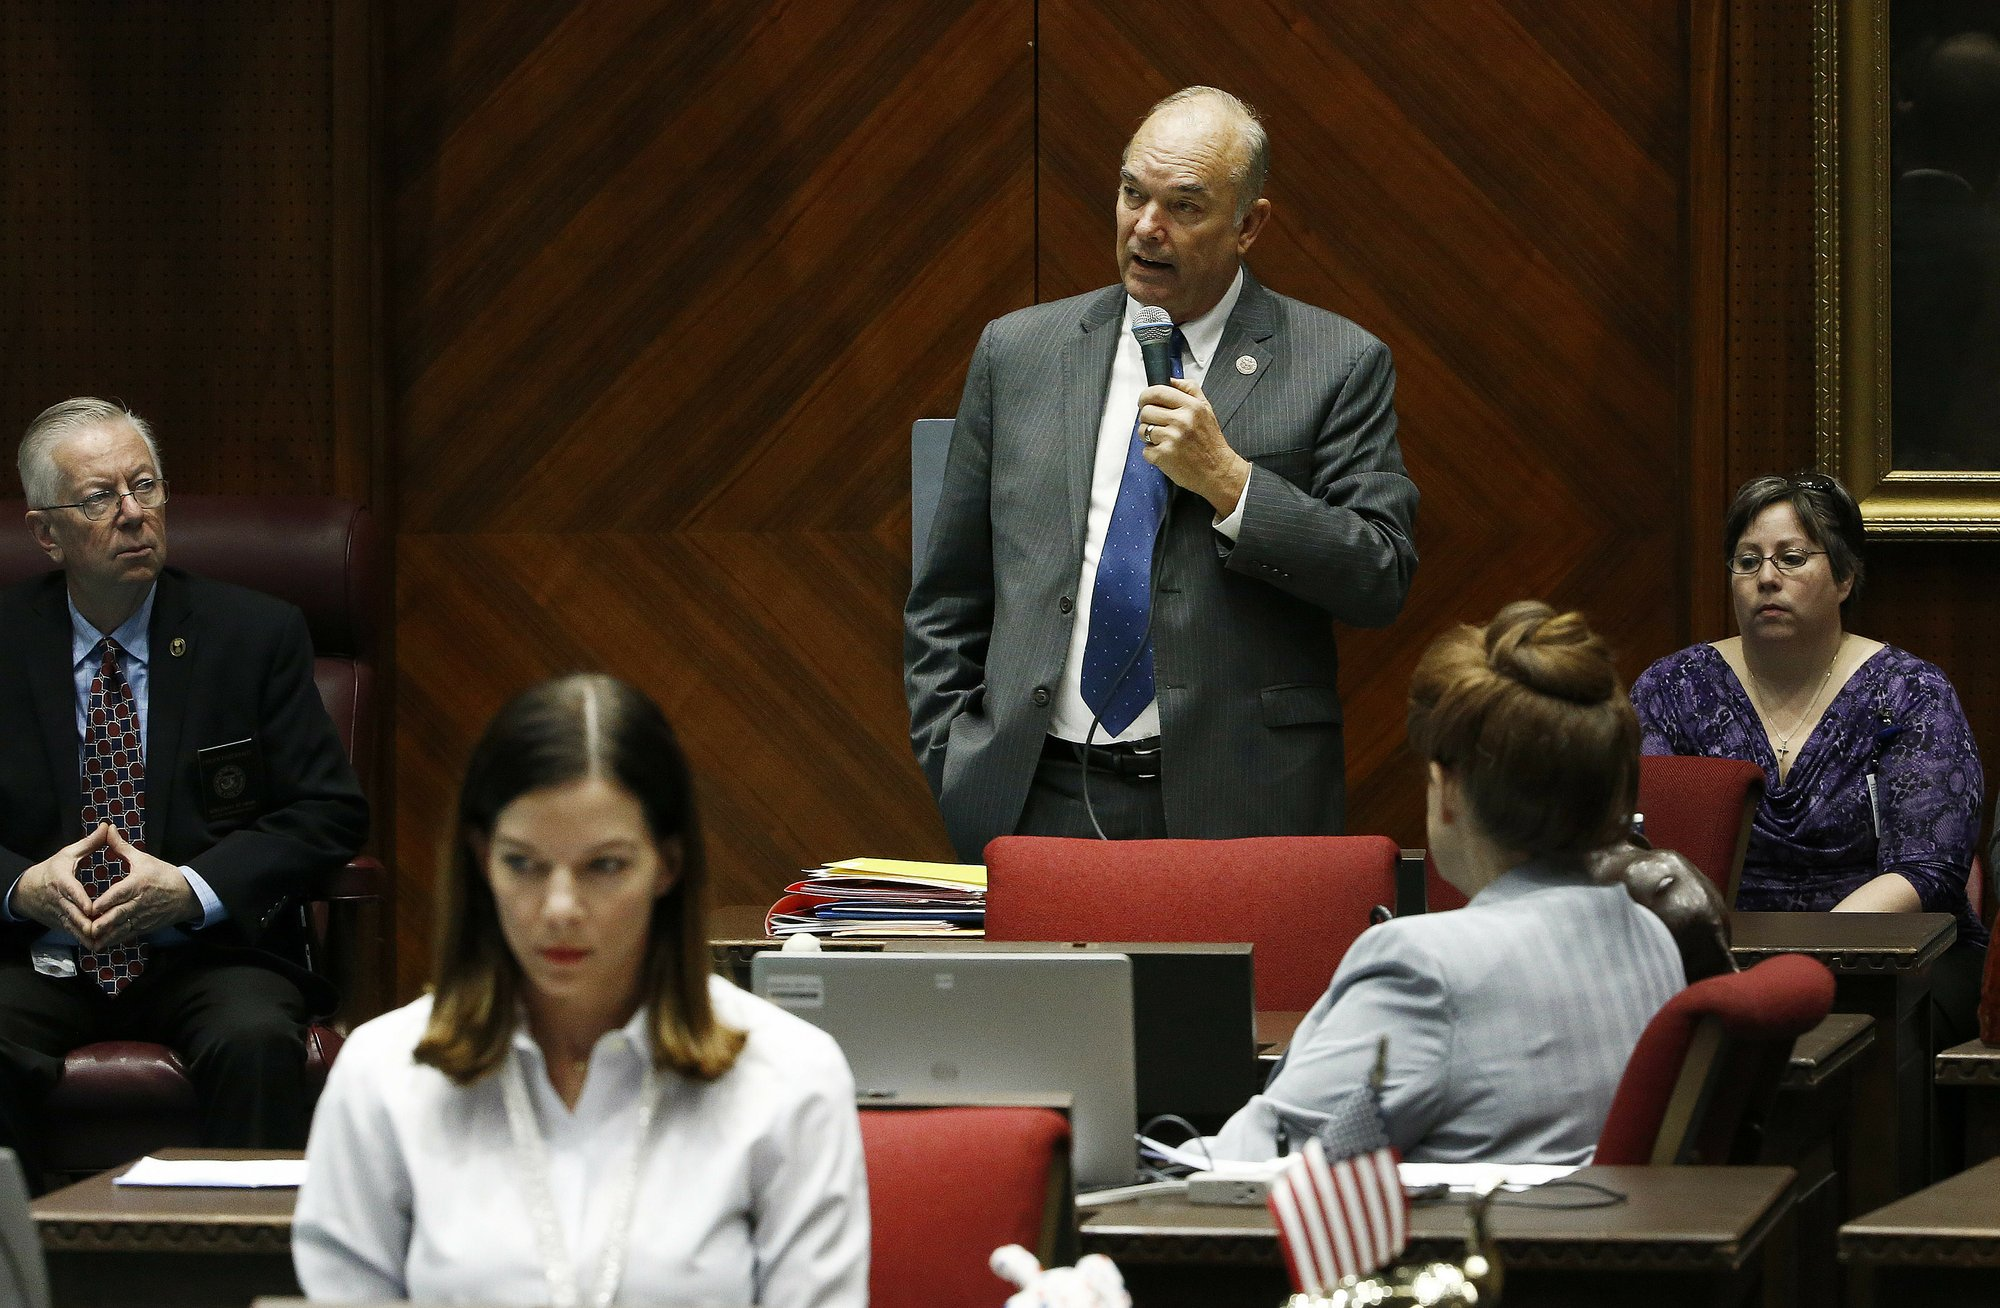 3 aides say assemblyman sexually harassed them